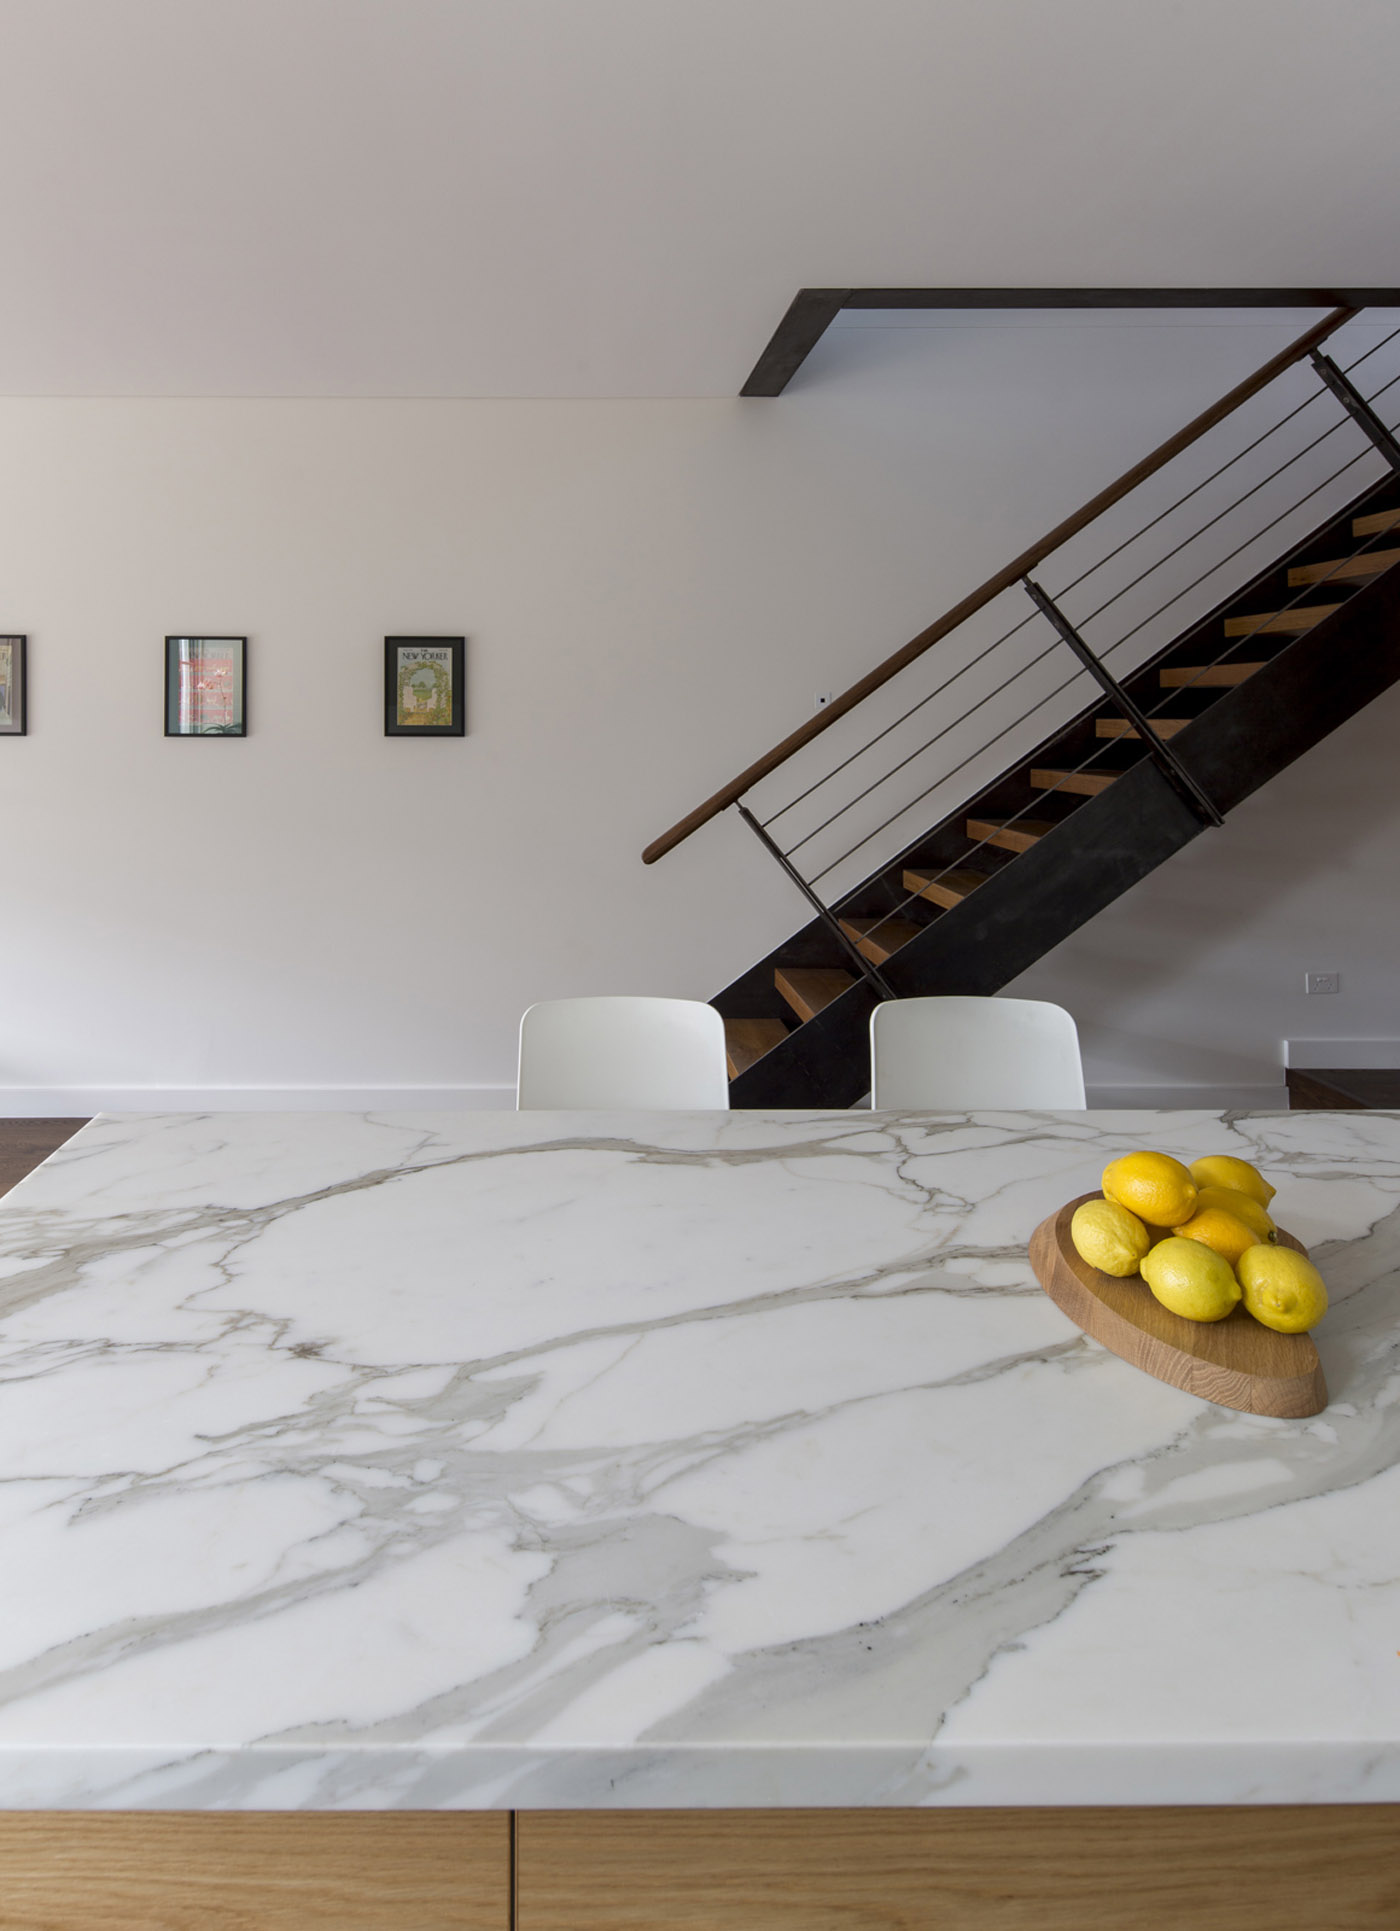 Gandha Kariappa Terrace by Sydney residential architects Sam Crawford Architects. Beautiful use of marble, timber and powder coated steel gives characteristic to this Australian home